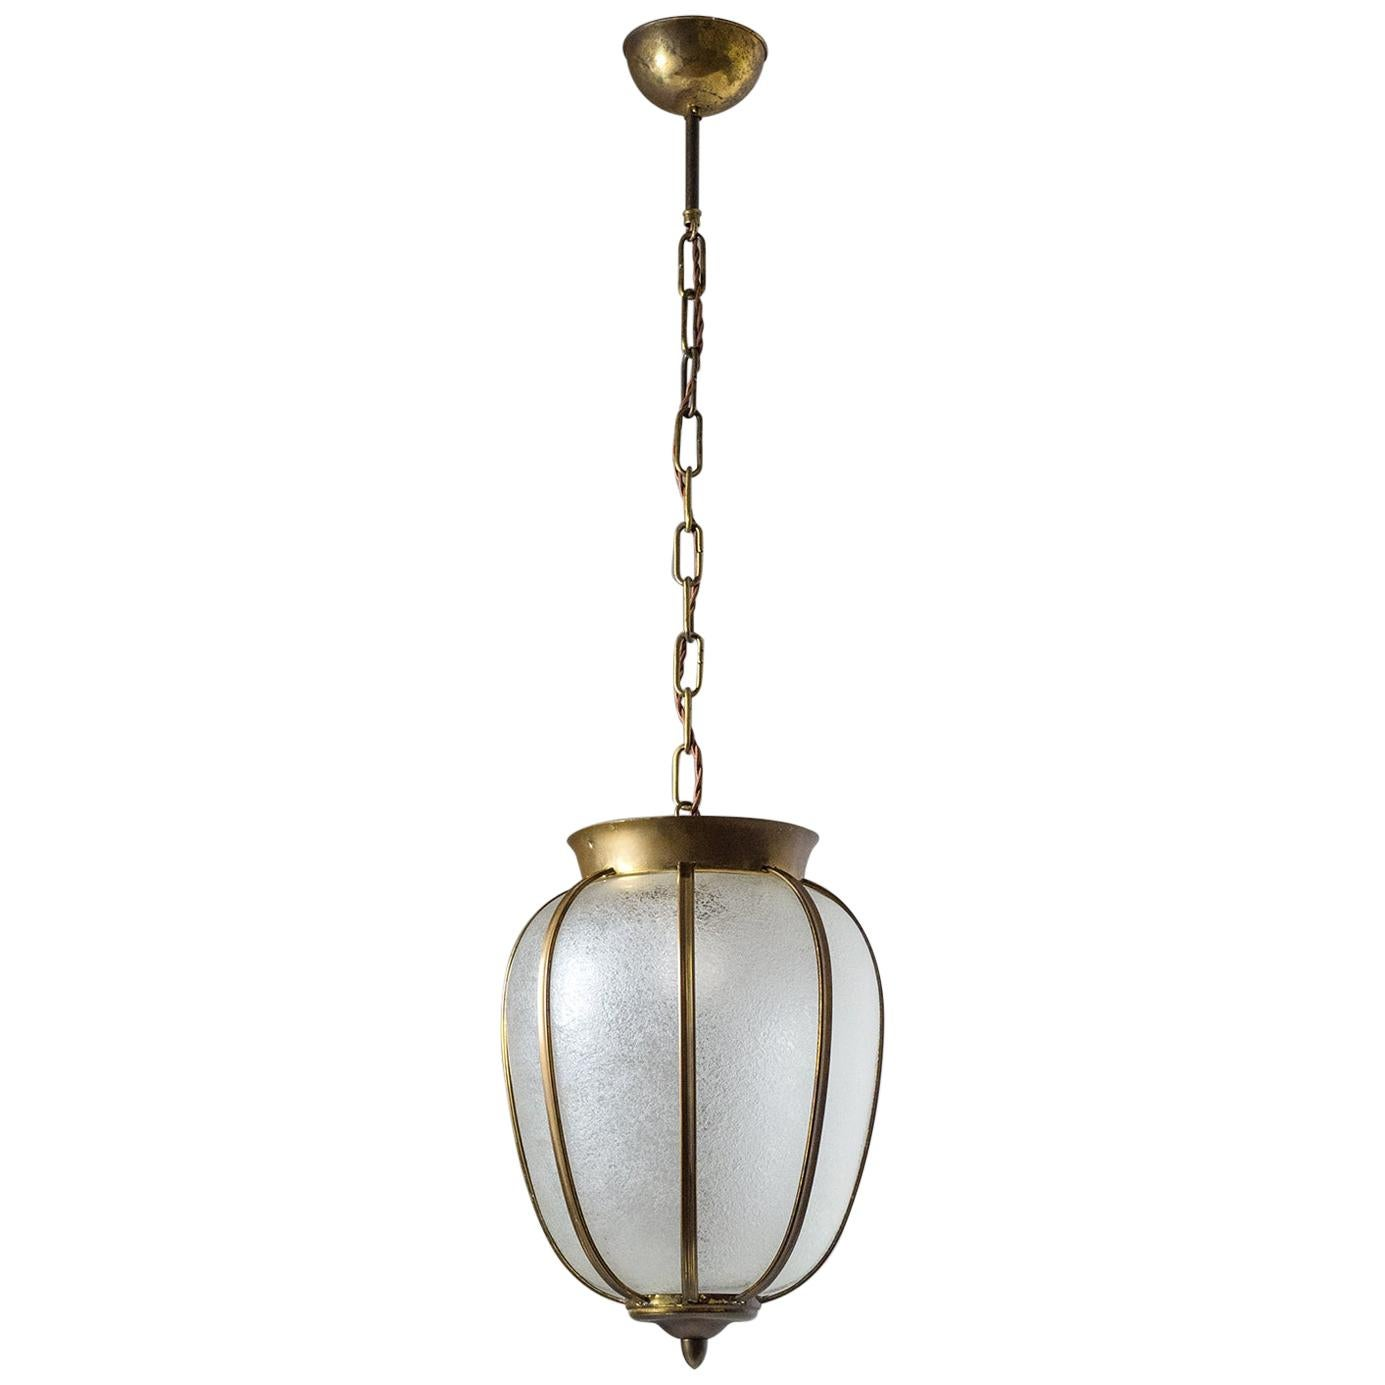 Italian 1950s Lantern, Brass and Textured Glass